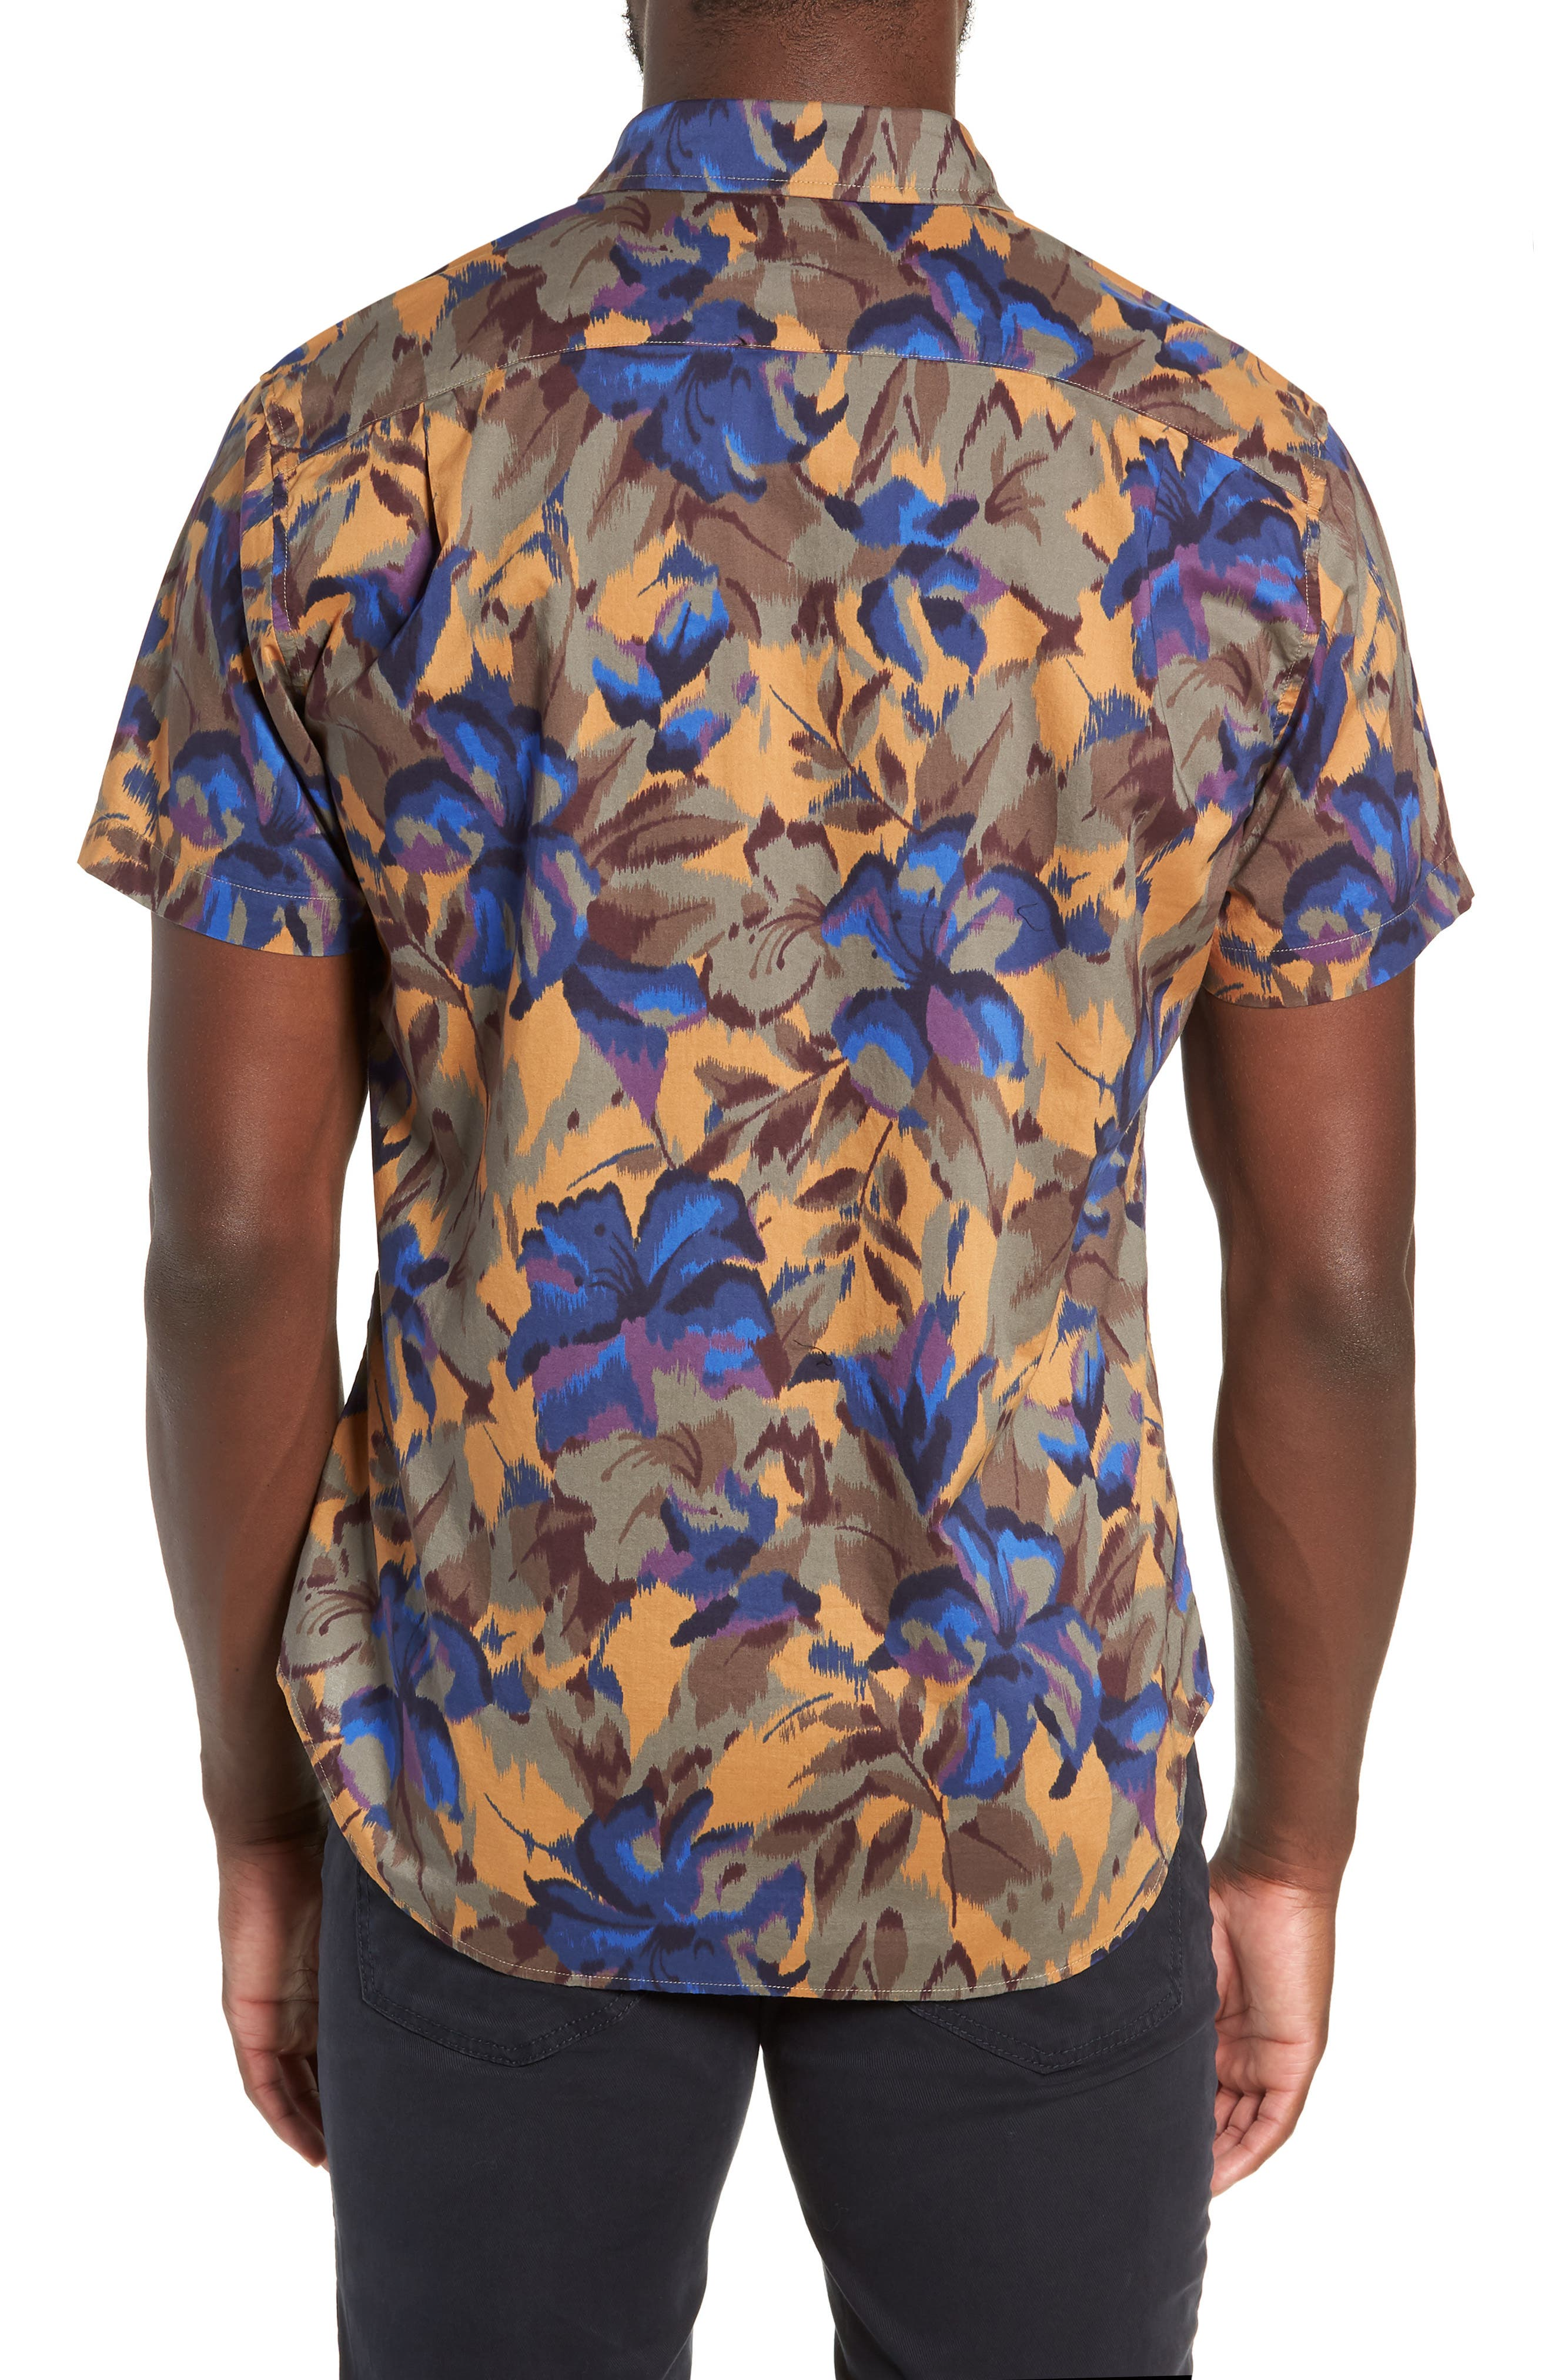 Riviera Slim Fit Sport Shirt,                             Alternate thumbnail 3, color,                             FADED FLORAL - AMBER TOPAZ